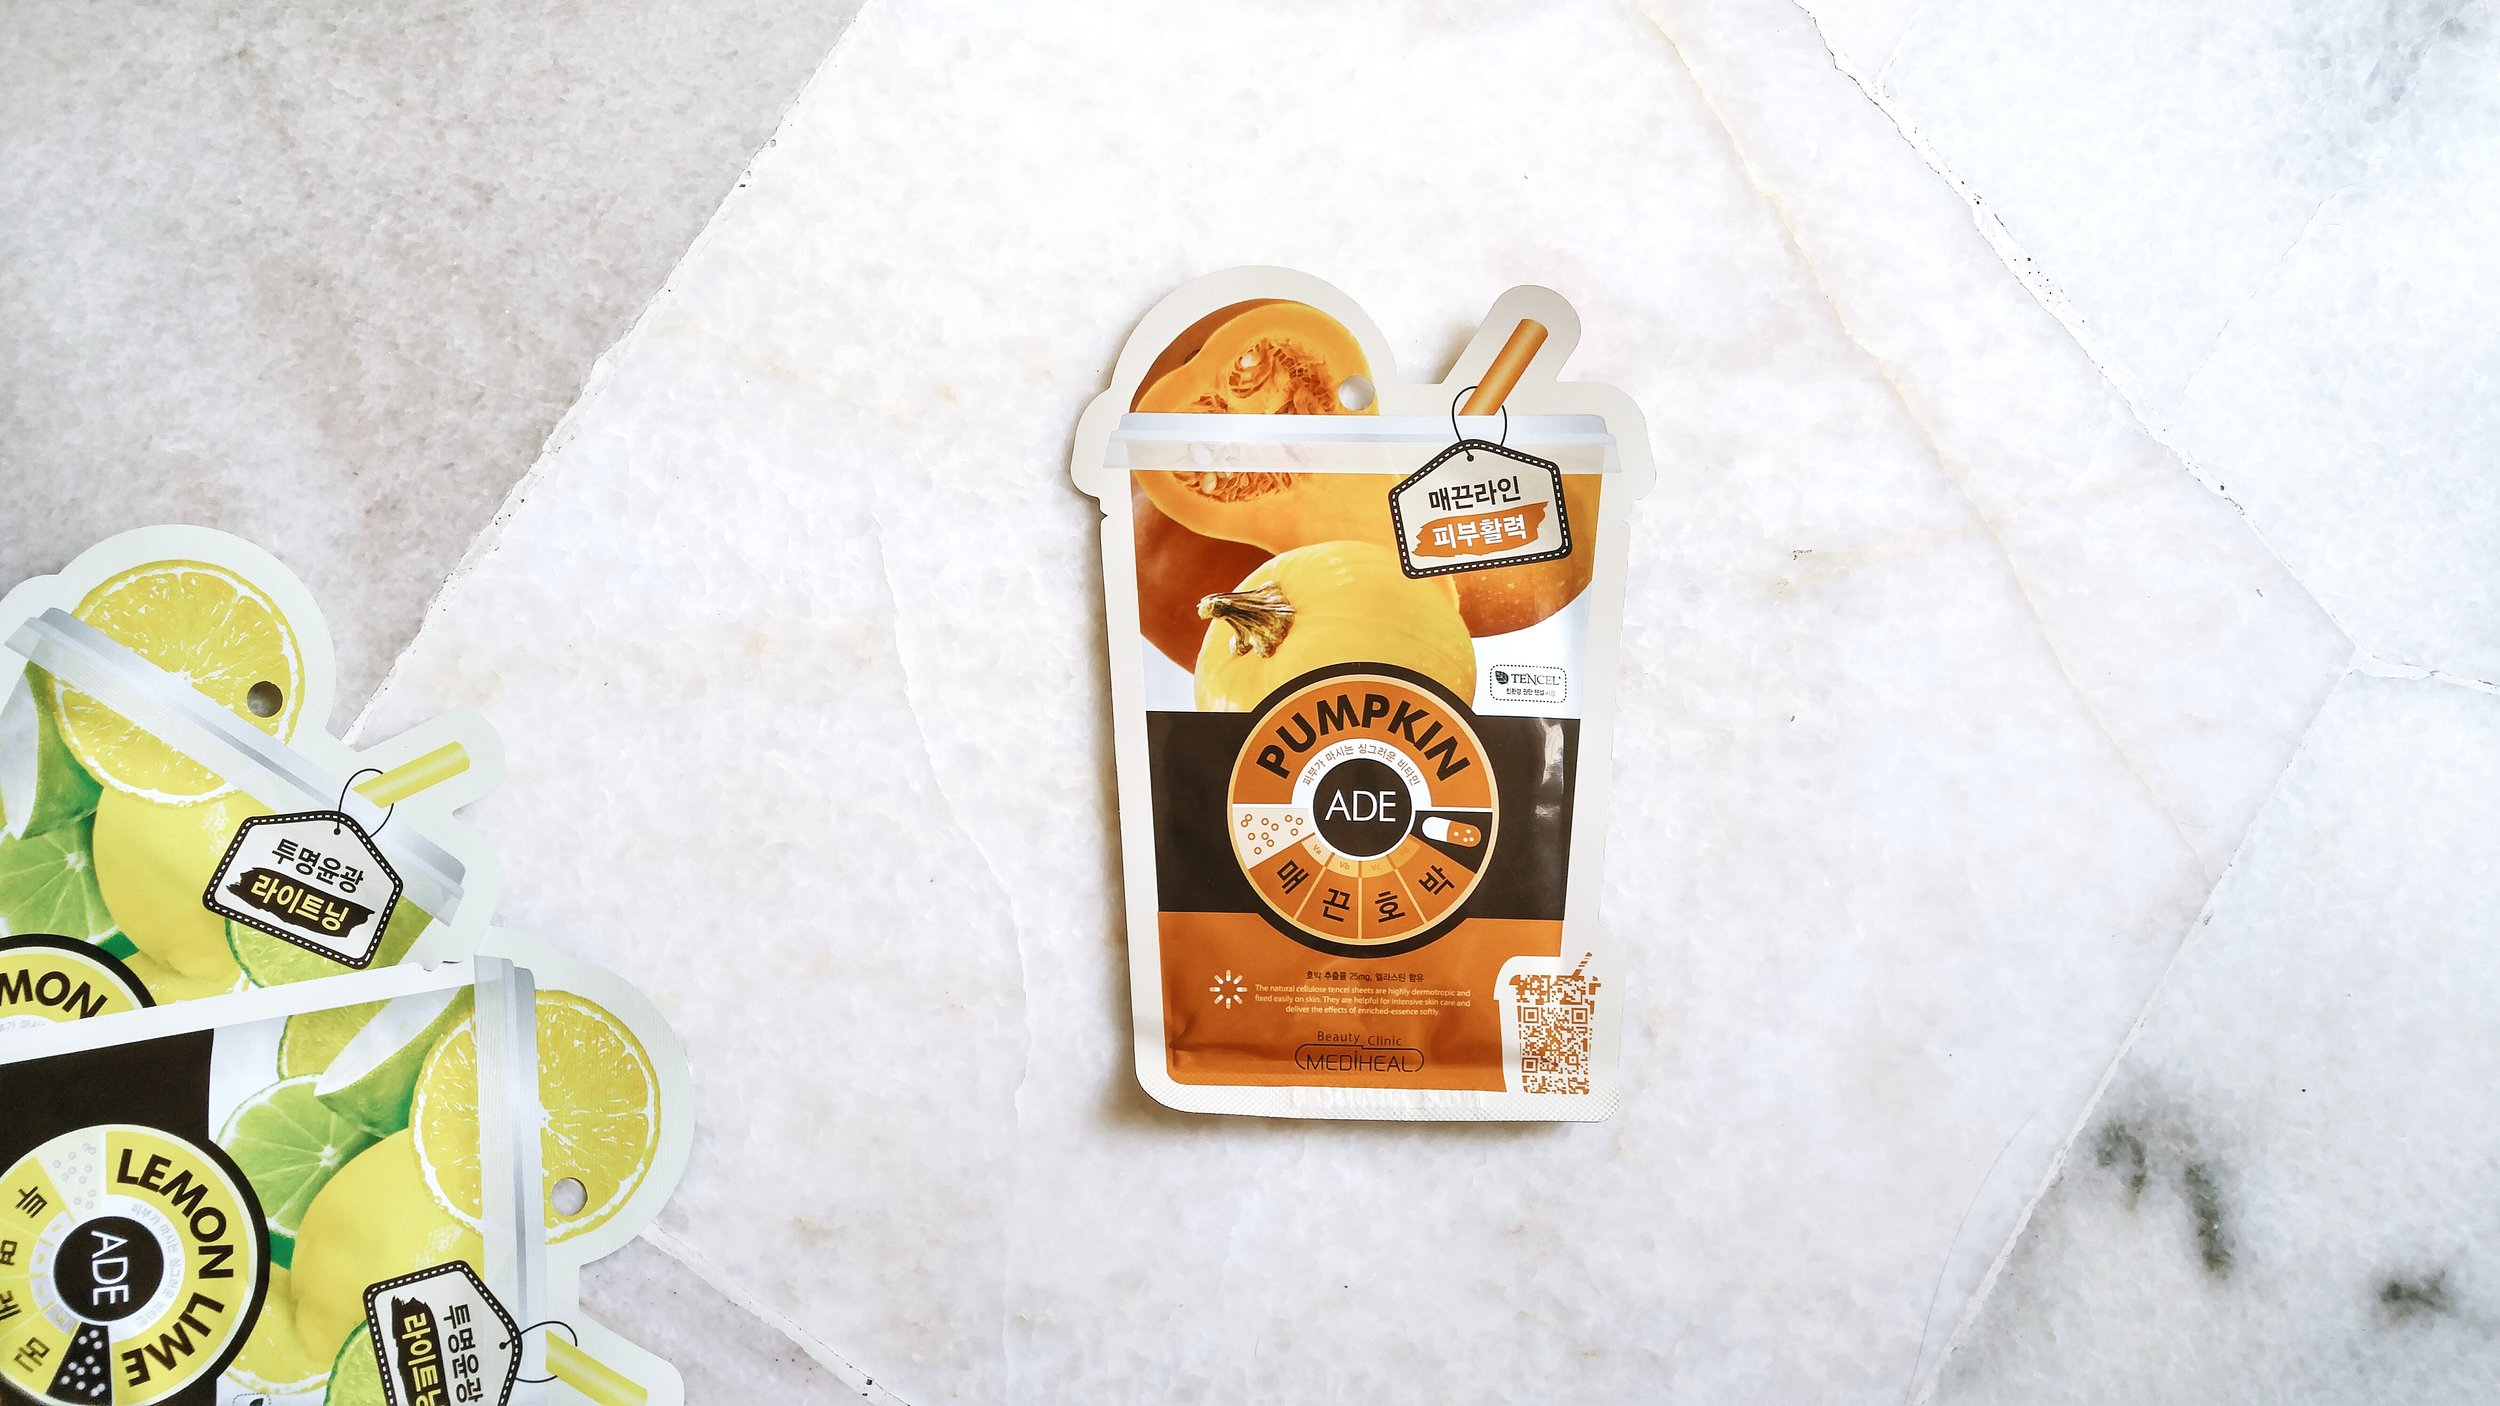 Mediheal Pumpkin Ade Mask. also in frame, the Lemon Lime Ade Mask from the same range. how cute is this cup-with-straw packaging?